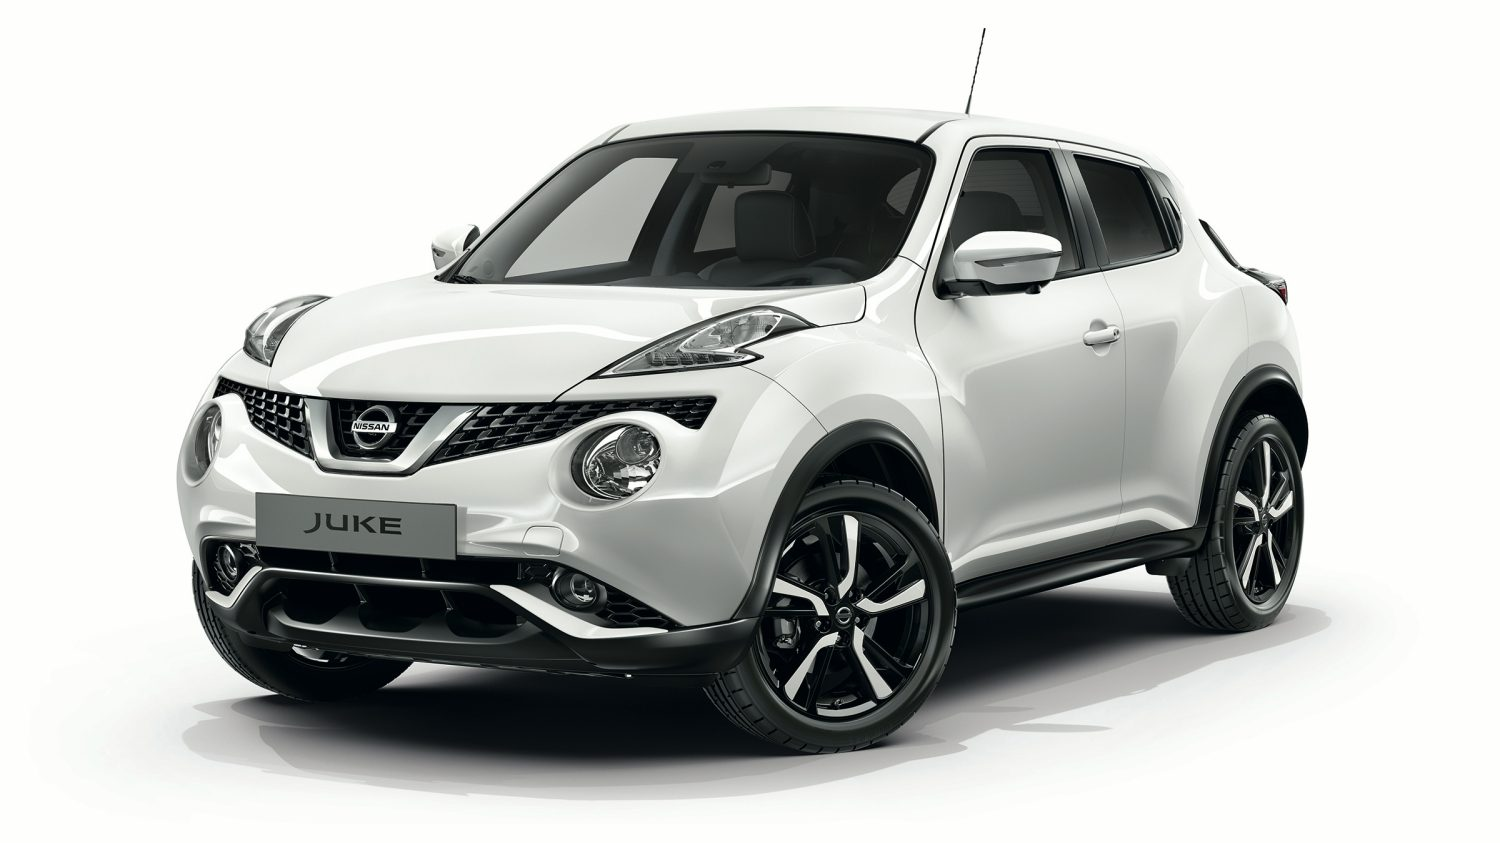 nissan juke rak s m szaki adatok kompakt crossover nissan. Black Bedroom Furniture Sets. Home Design Ideas